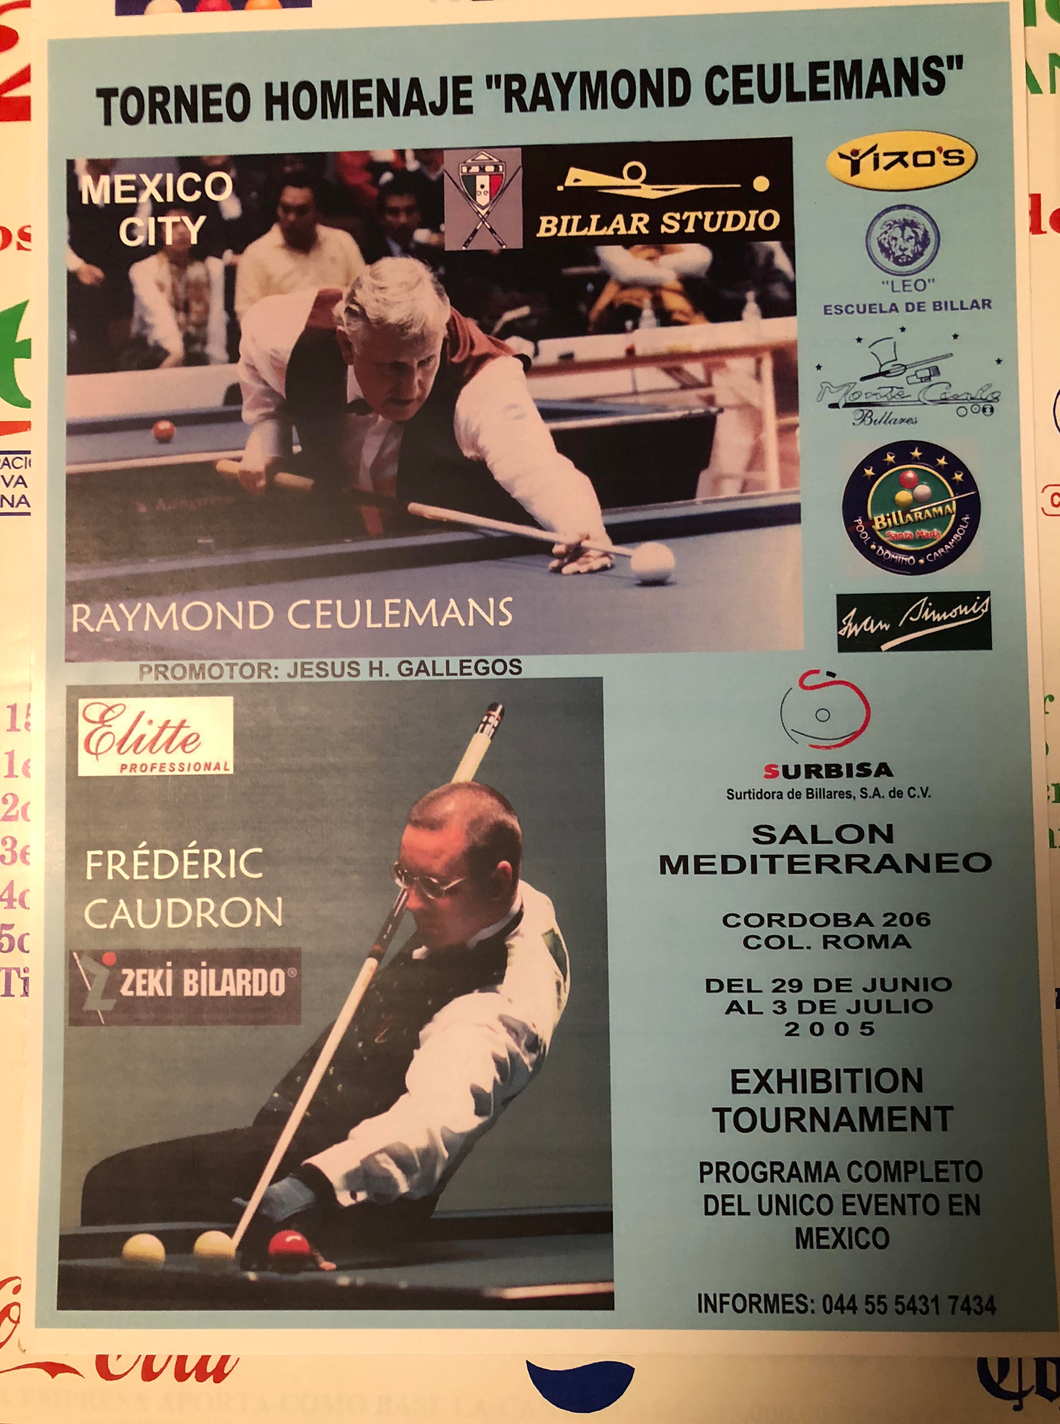 2005 Exhibition Tournament Mexico City